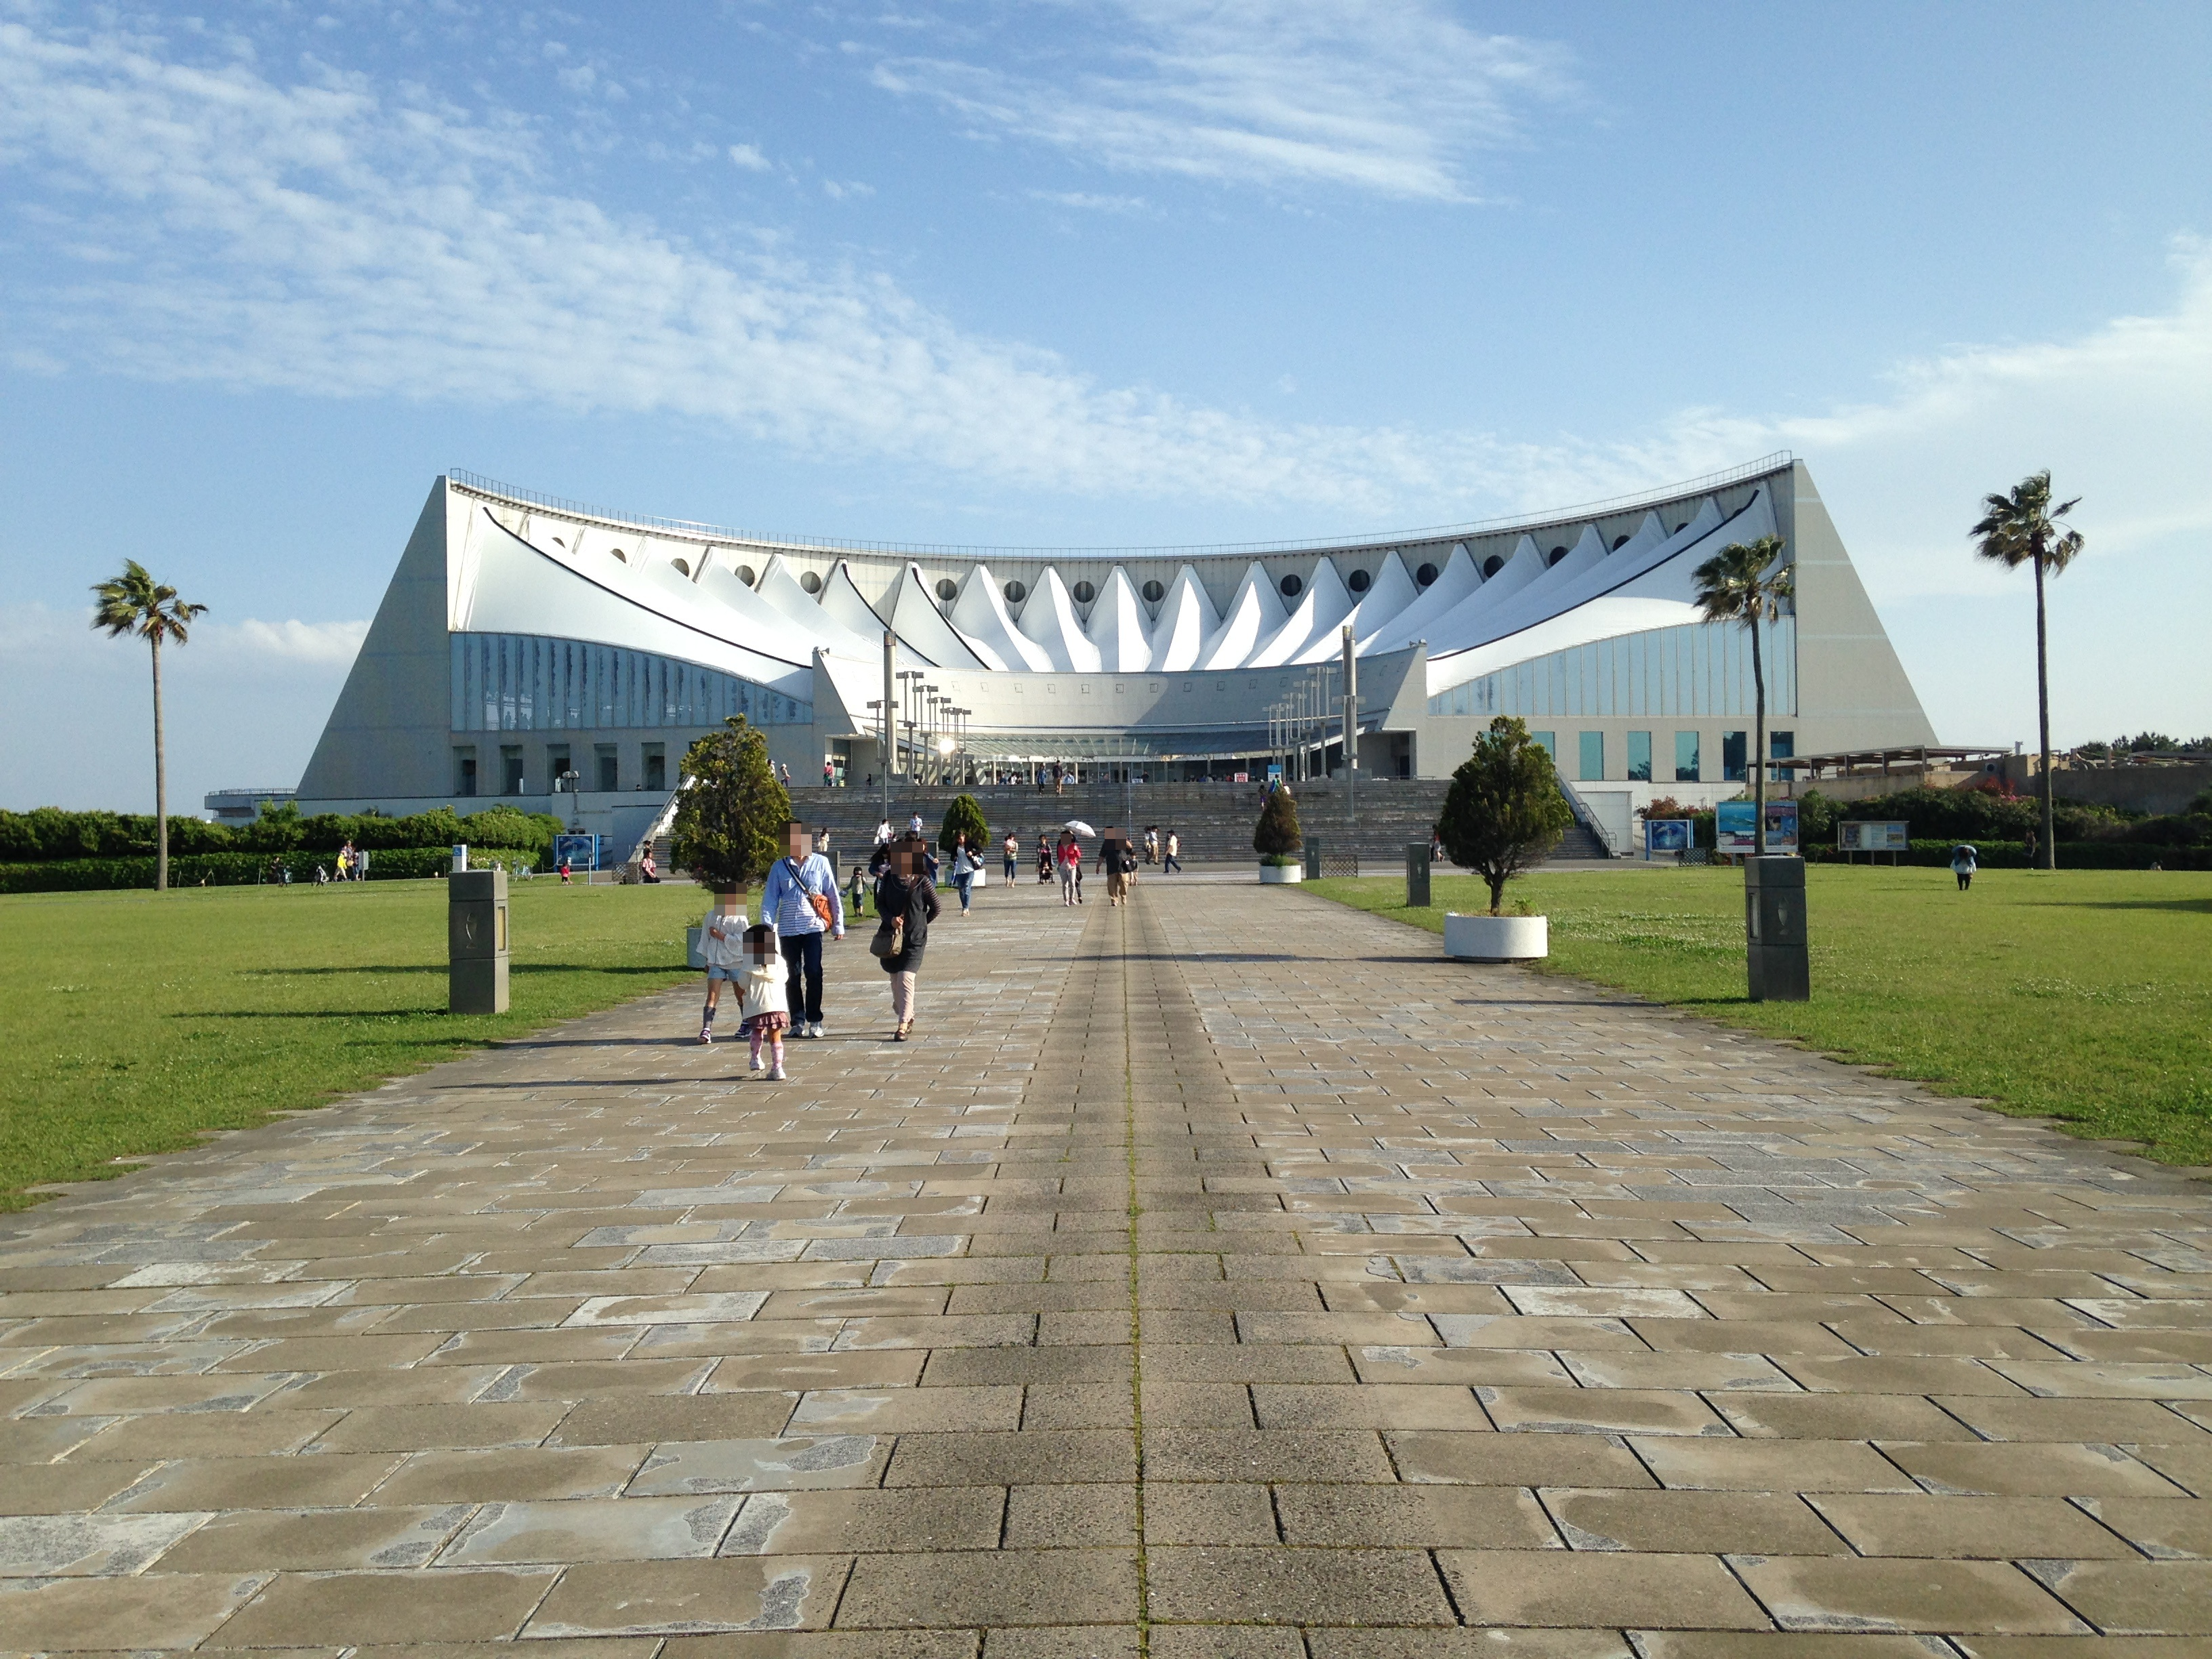 File:Marine World Uminonakamichi 2.JPG - 维基百科,自由的百科全书